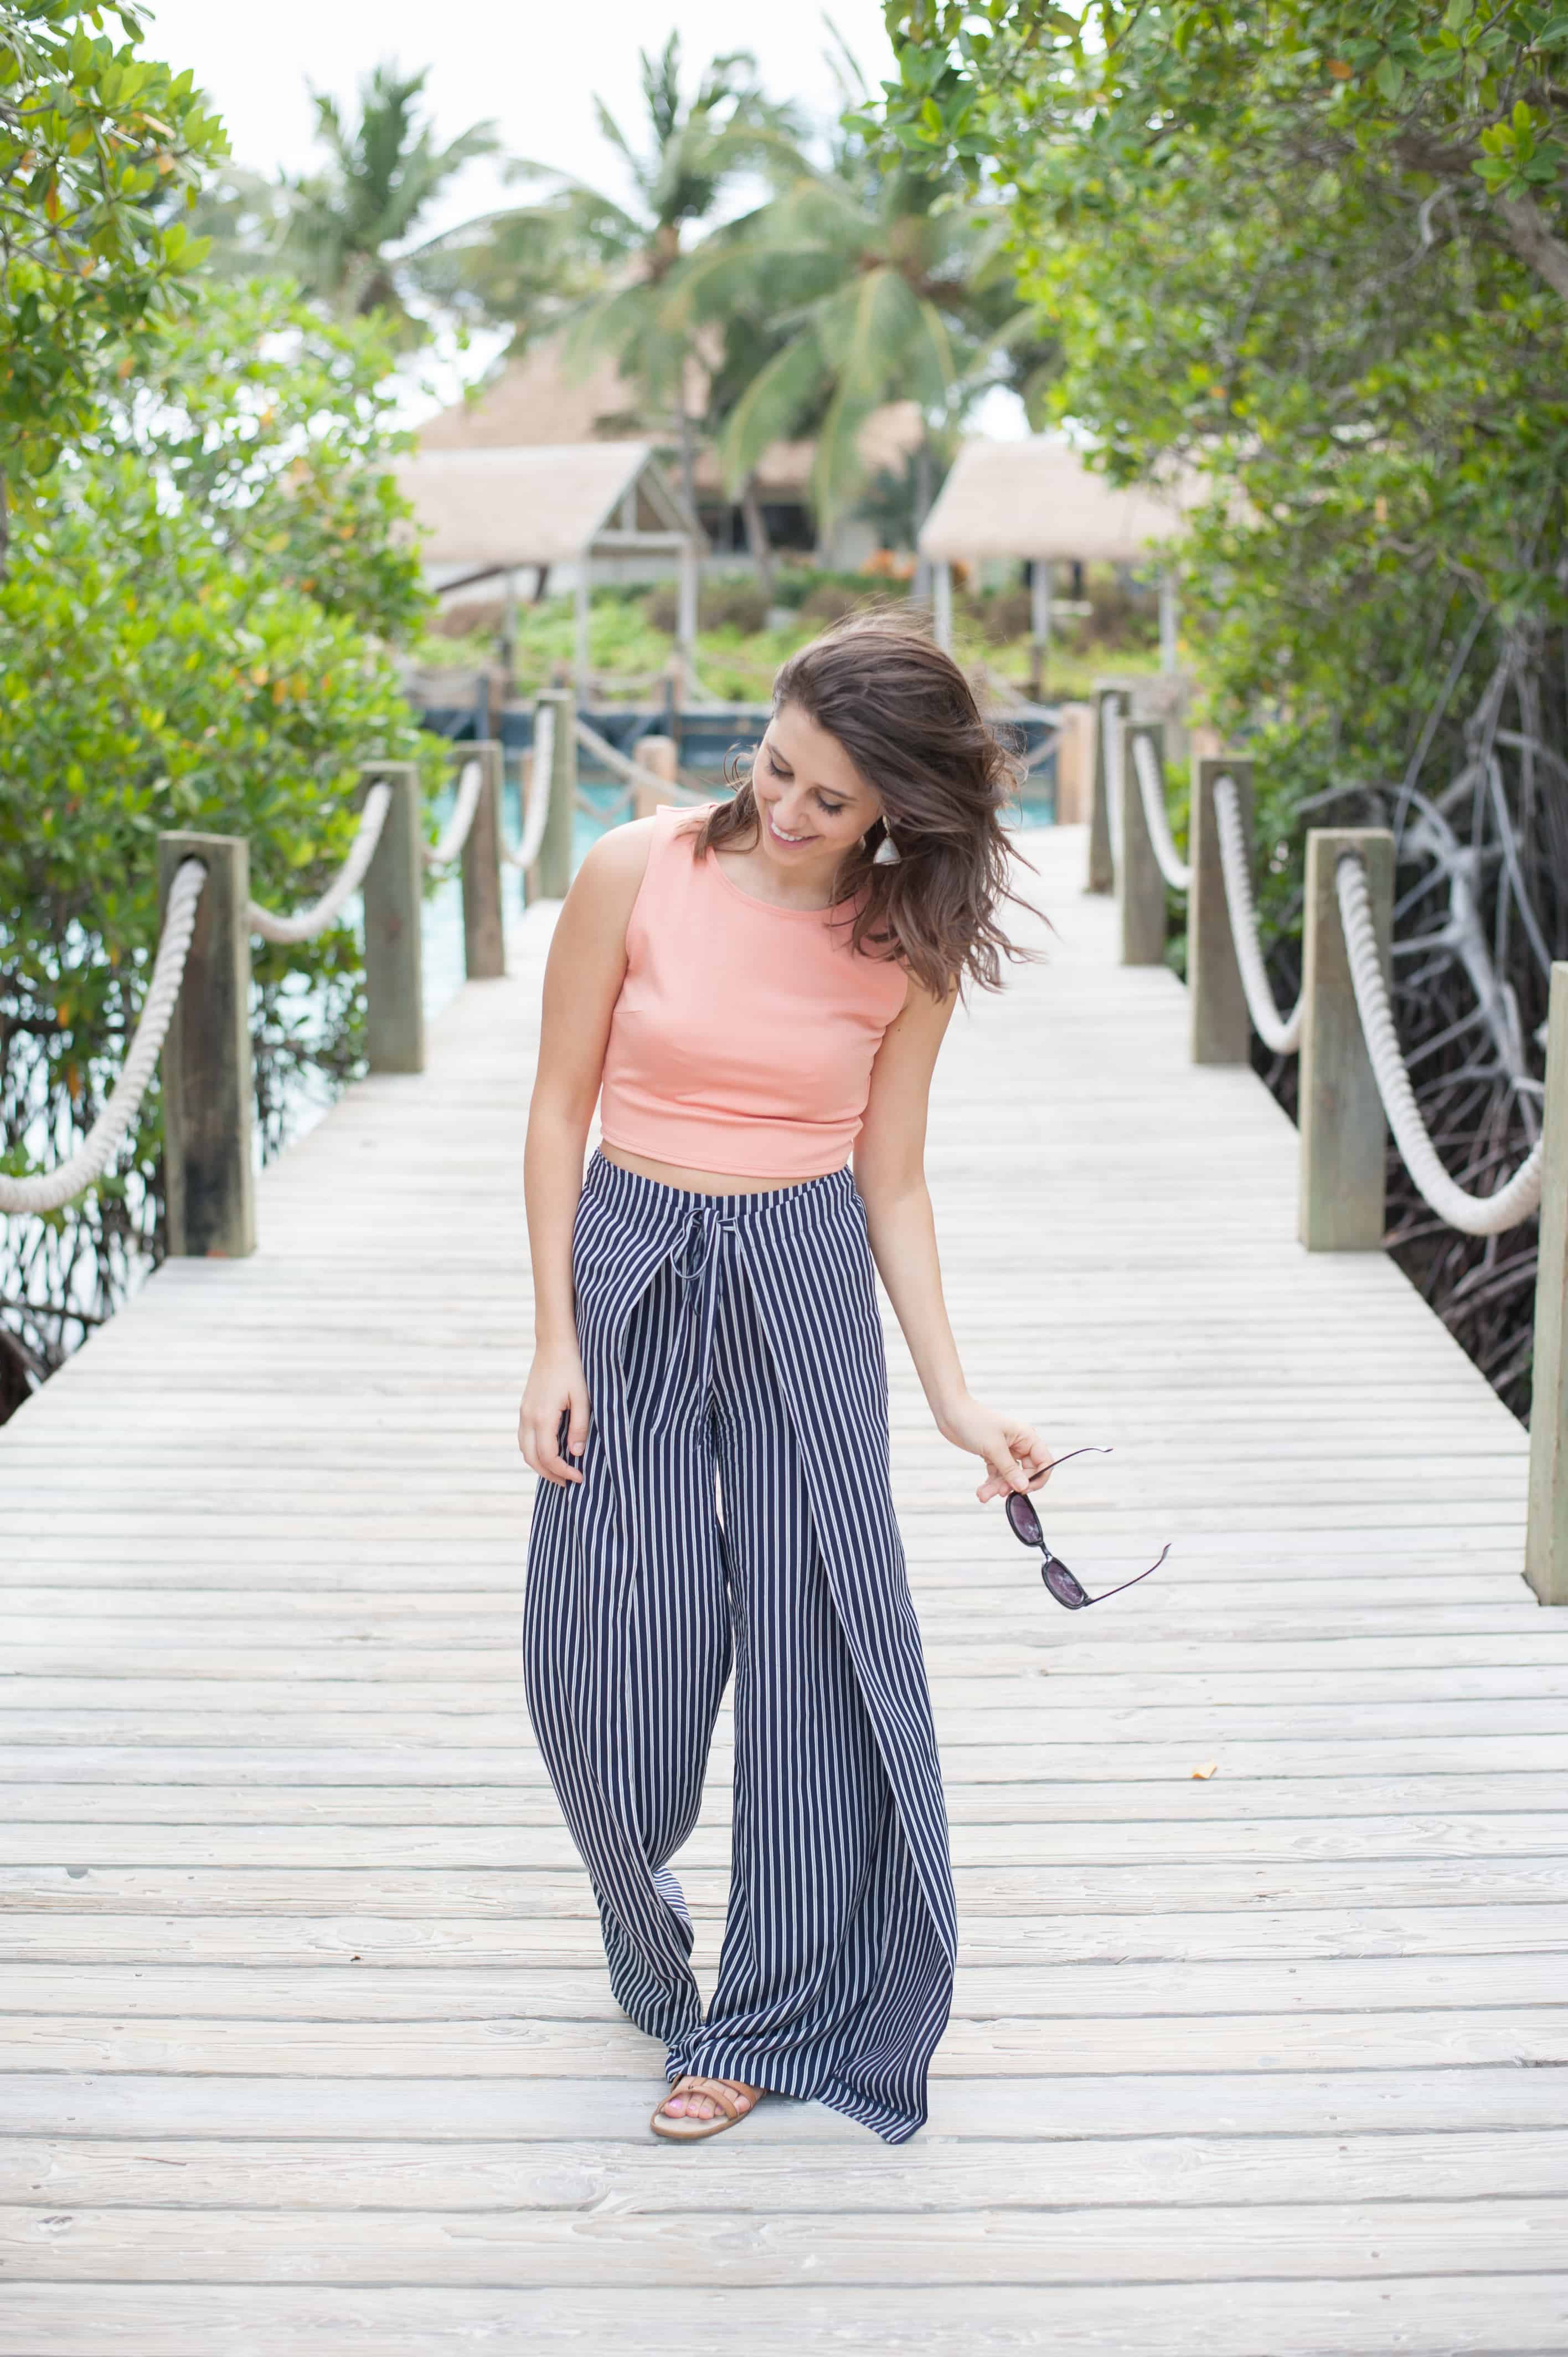 Dress Up Buttercup // A Houston-based fashion and inspiration blog developed to daily inspire your own personal style by Dede Raad | Aruba Renaissance Island